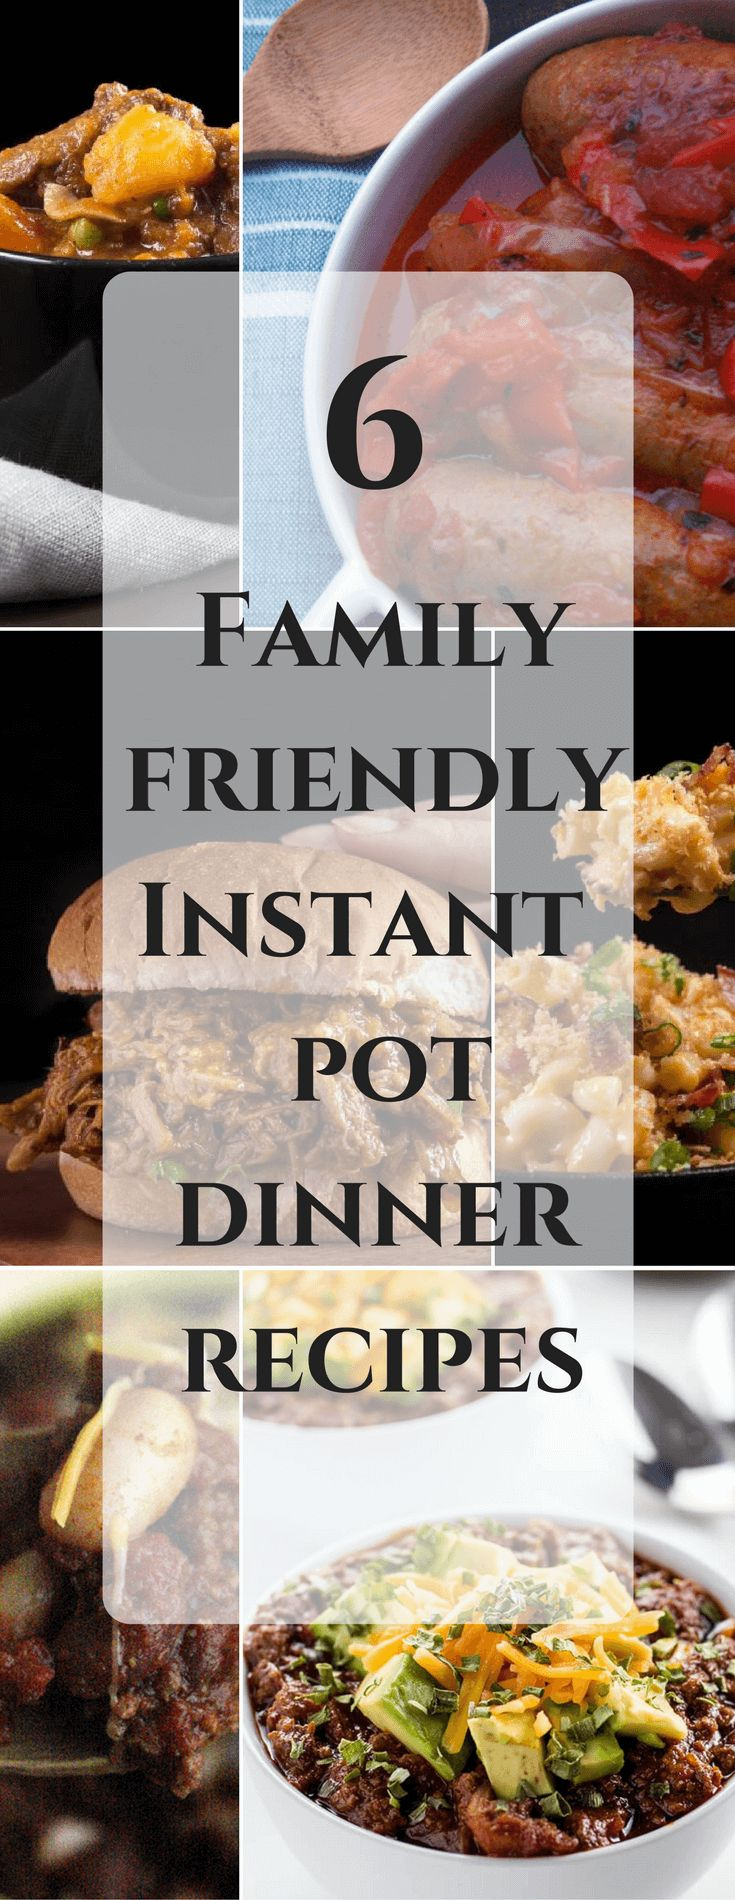 17 best images about pressure cooker dinners on pinterest for What can i make for dinner tonight